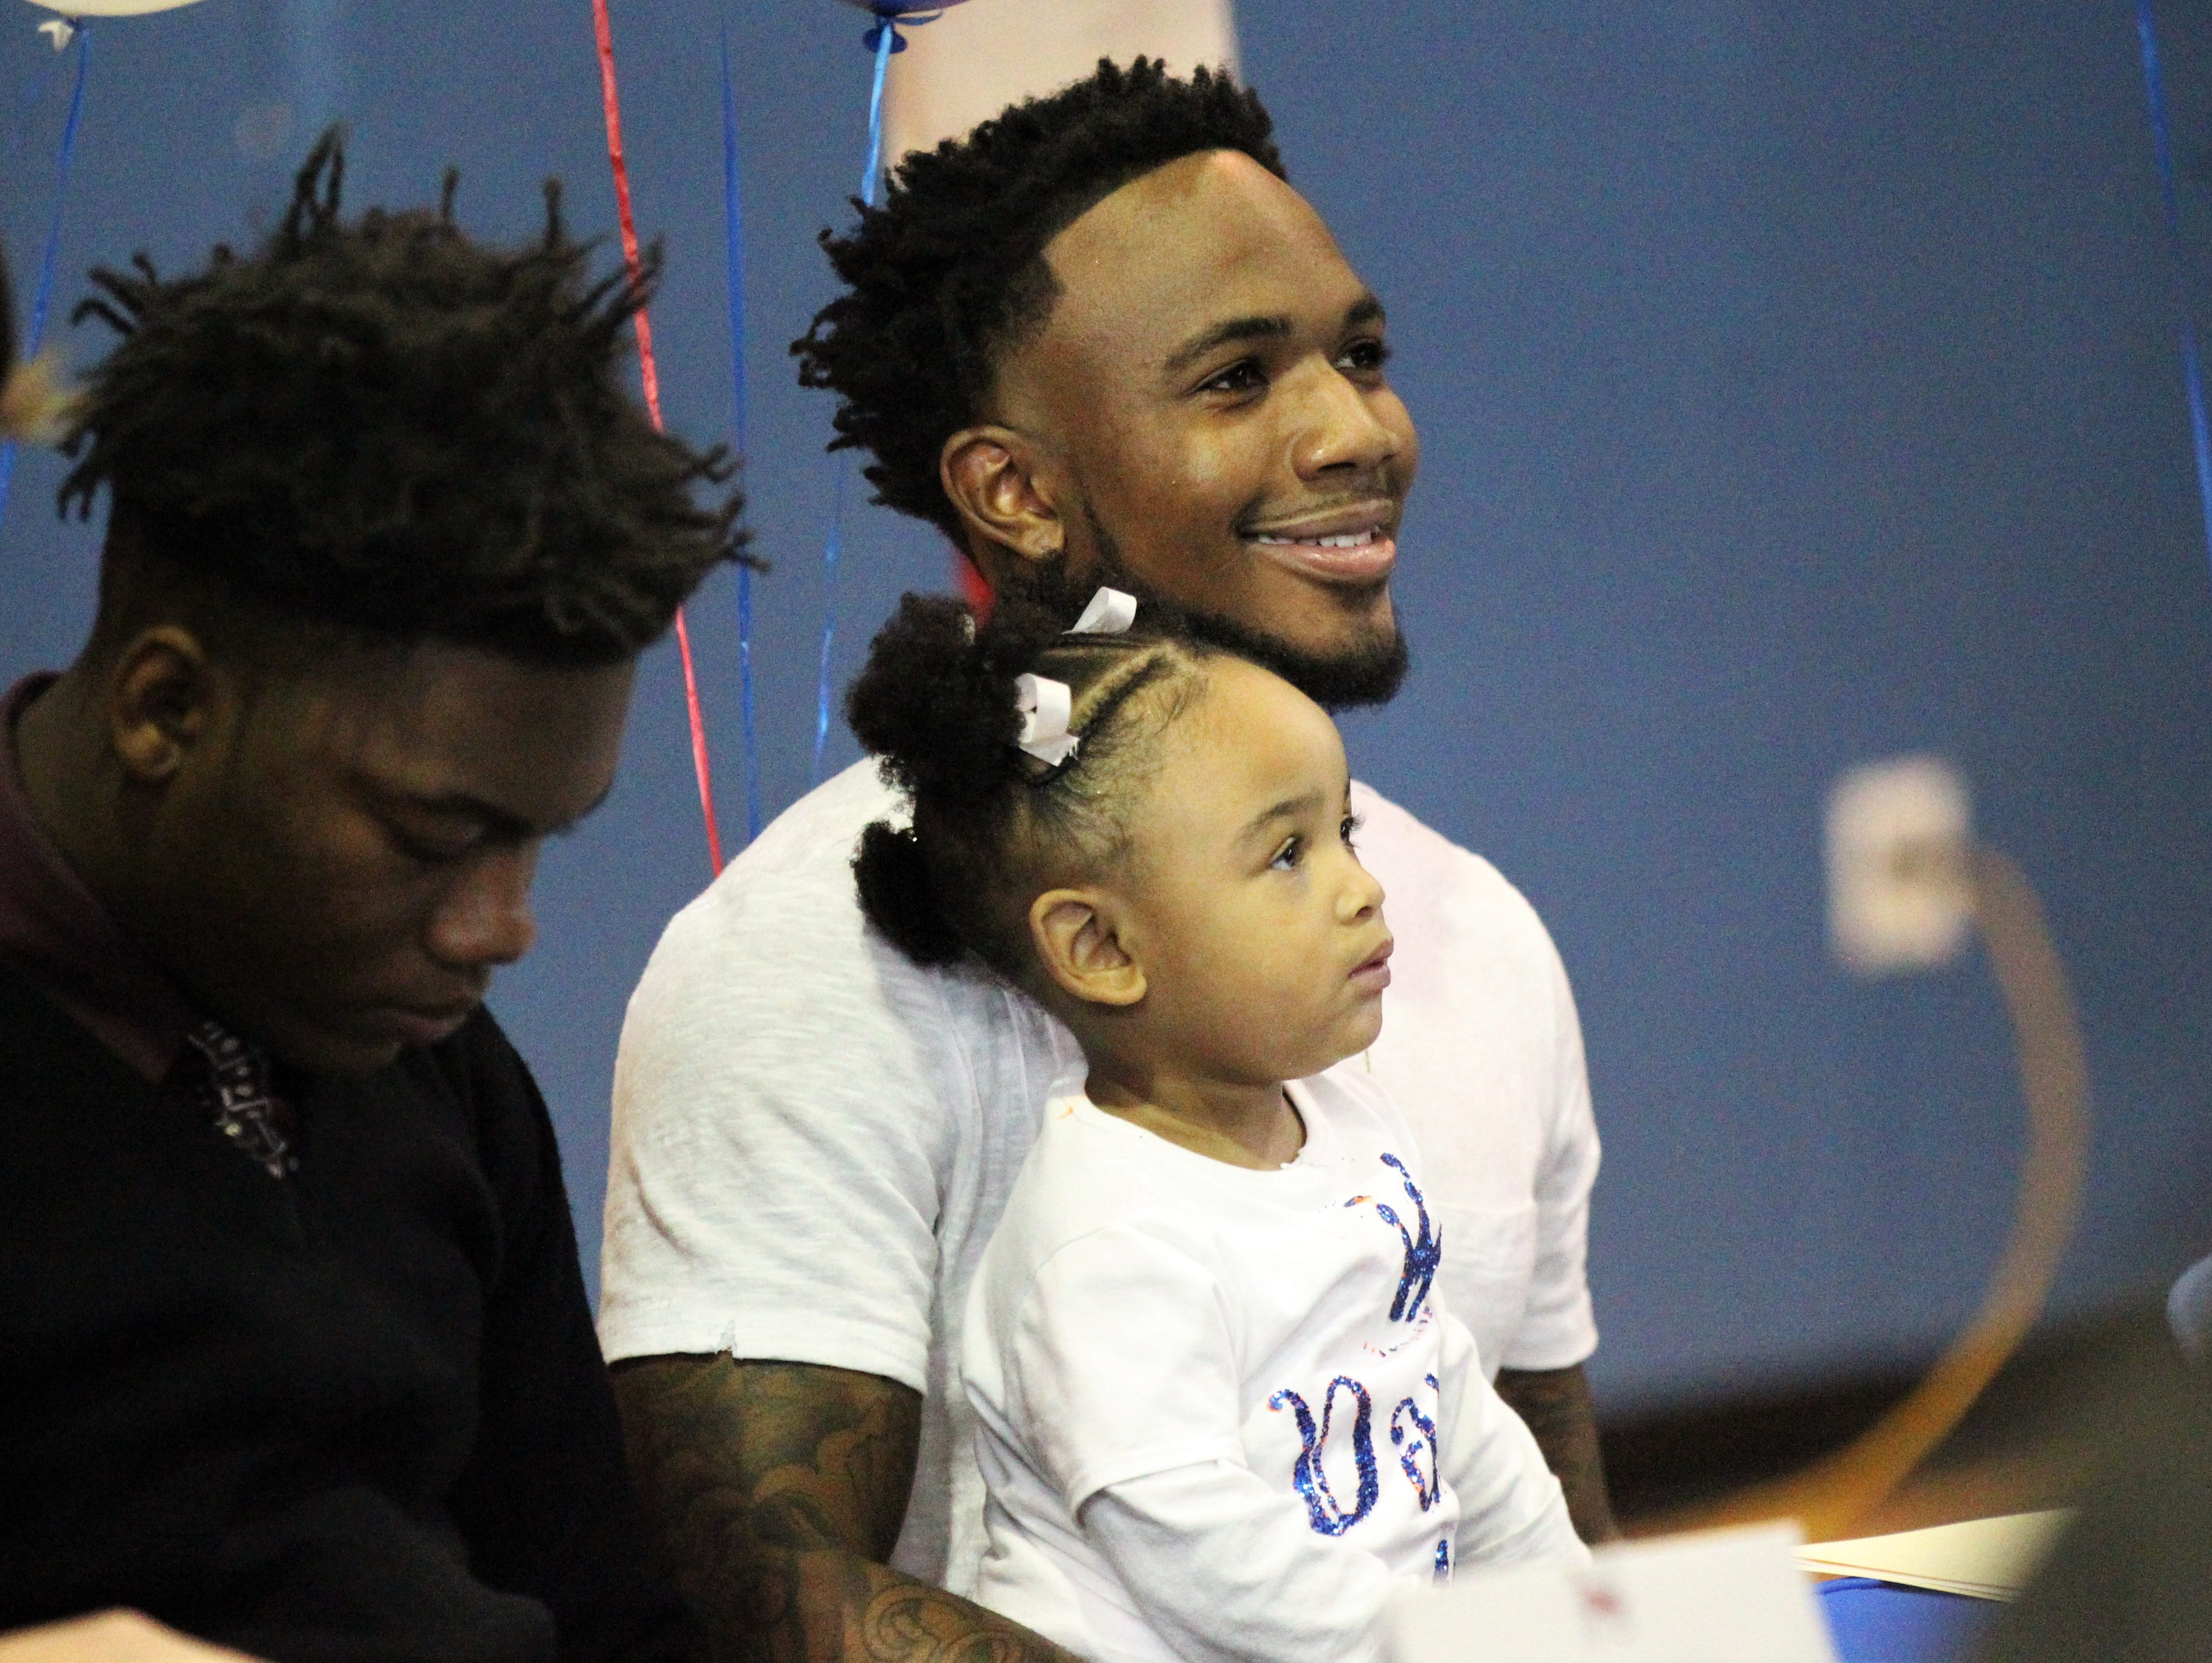 Jefferson County senior receiver Da'Shon Davis, with his nearly 2-year-old daughter De'ari, waits to sign with Tennessee State during Jefferson County's signing day ceremony on Feb. 13, 2019.